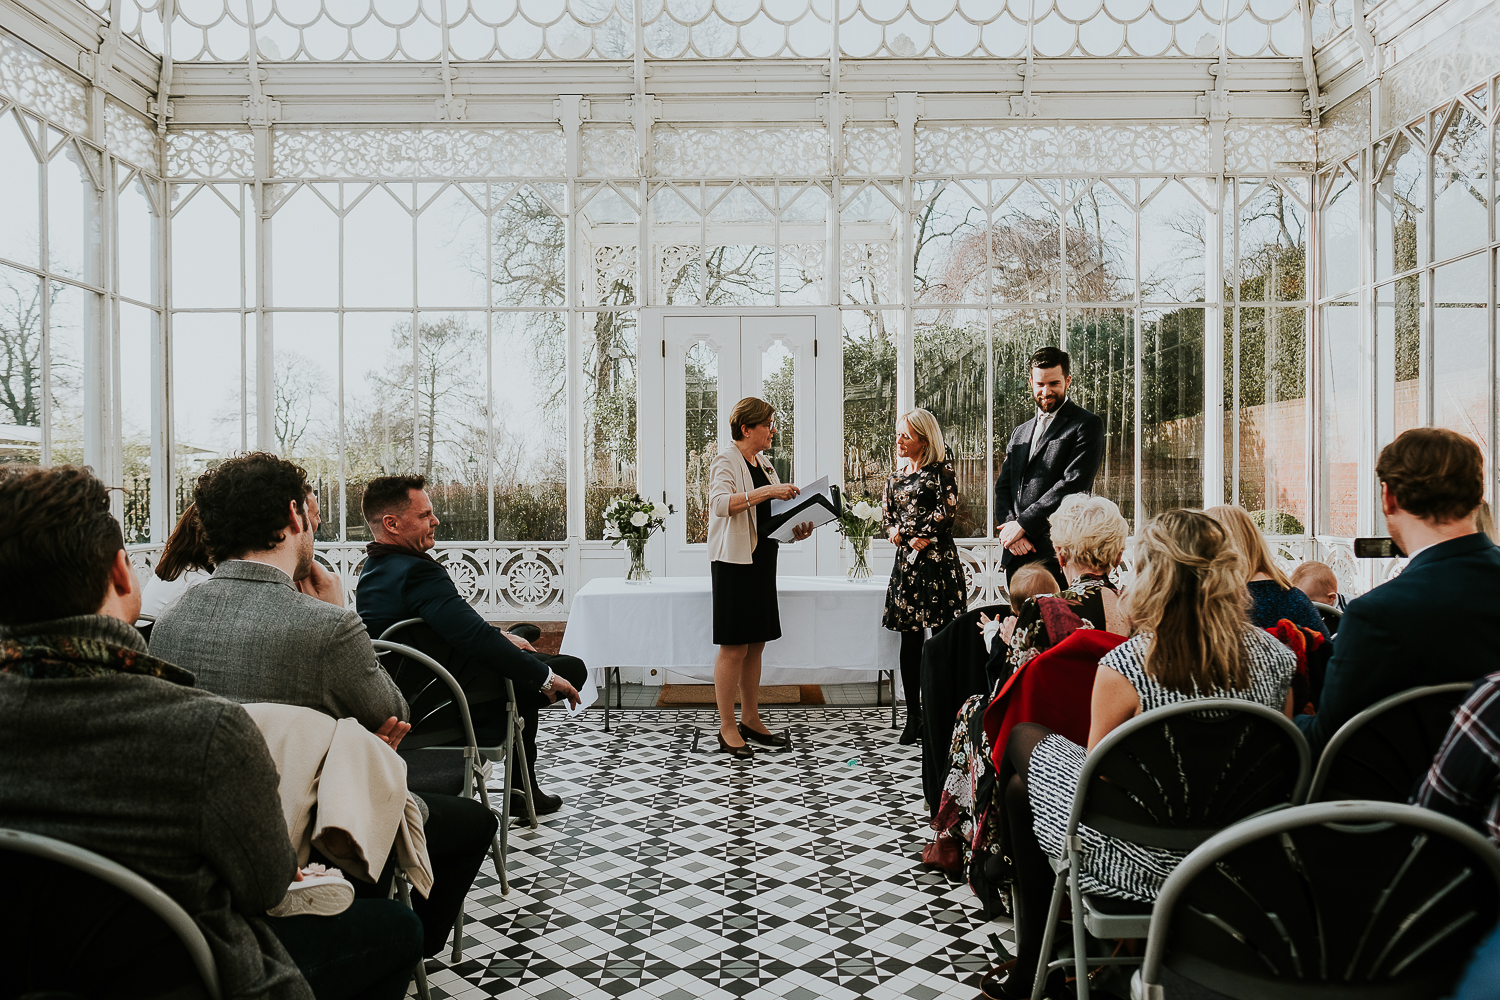 horniman museum conservatory london christening photography ceremony